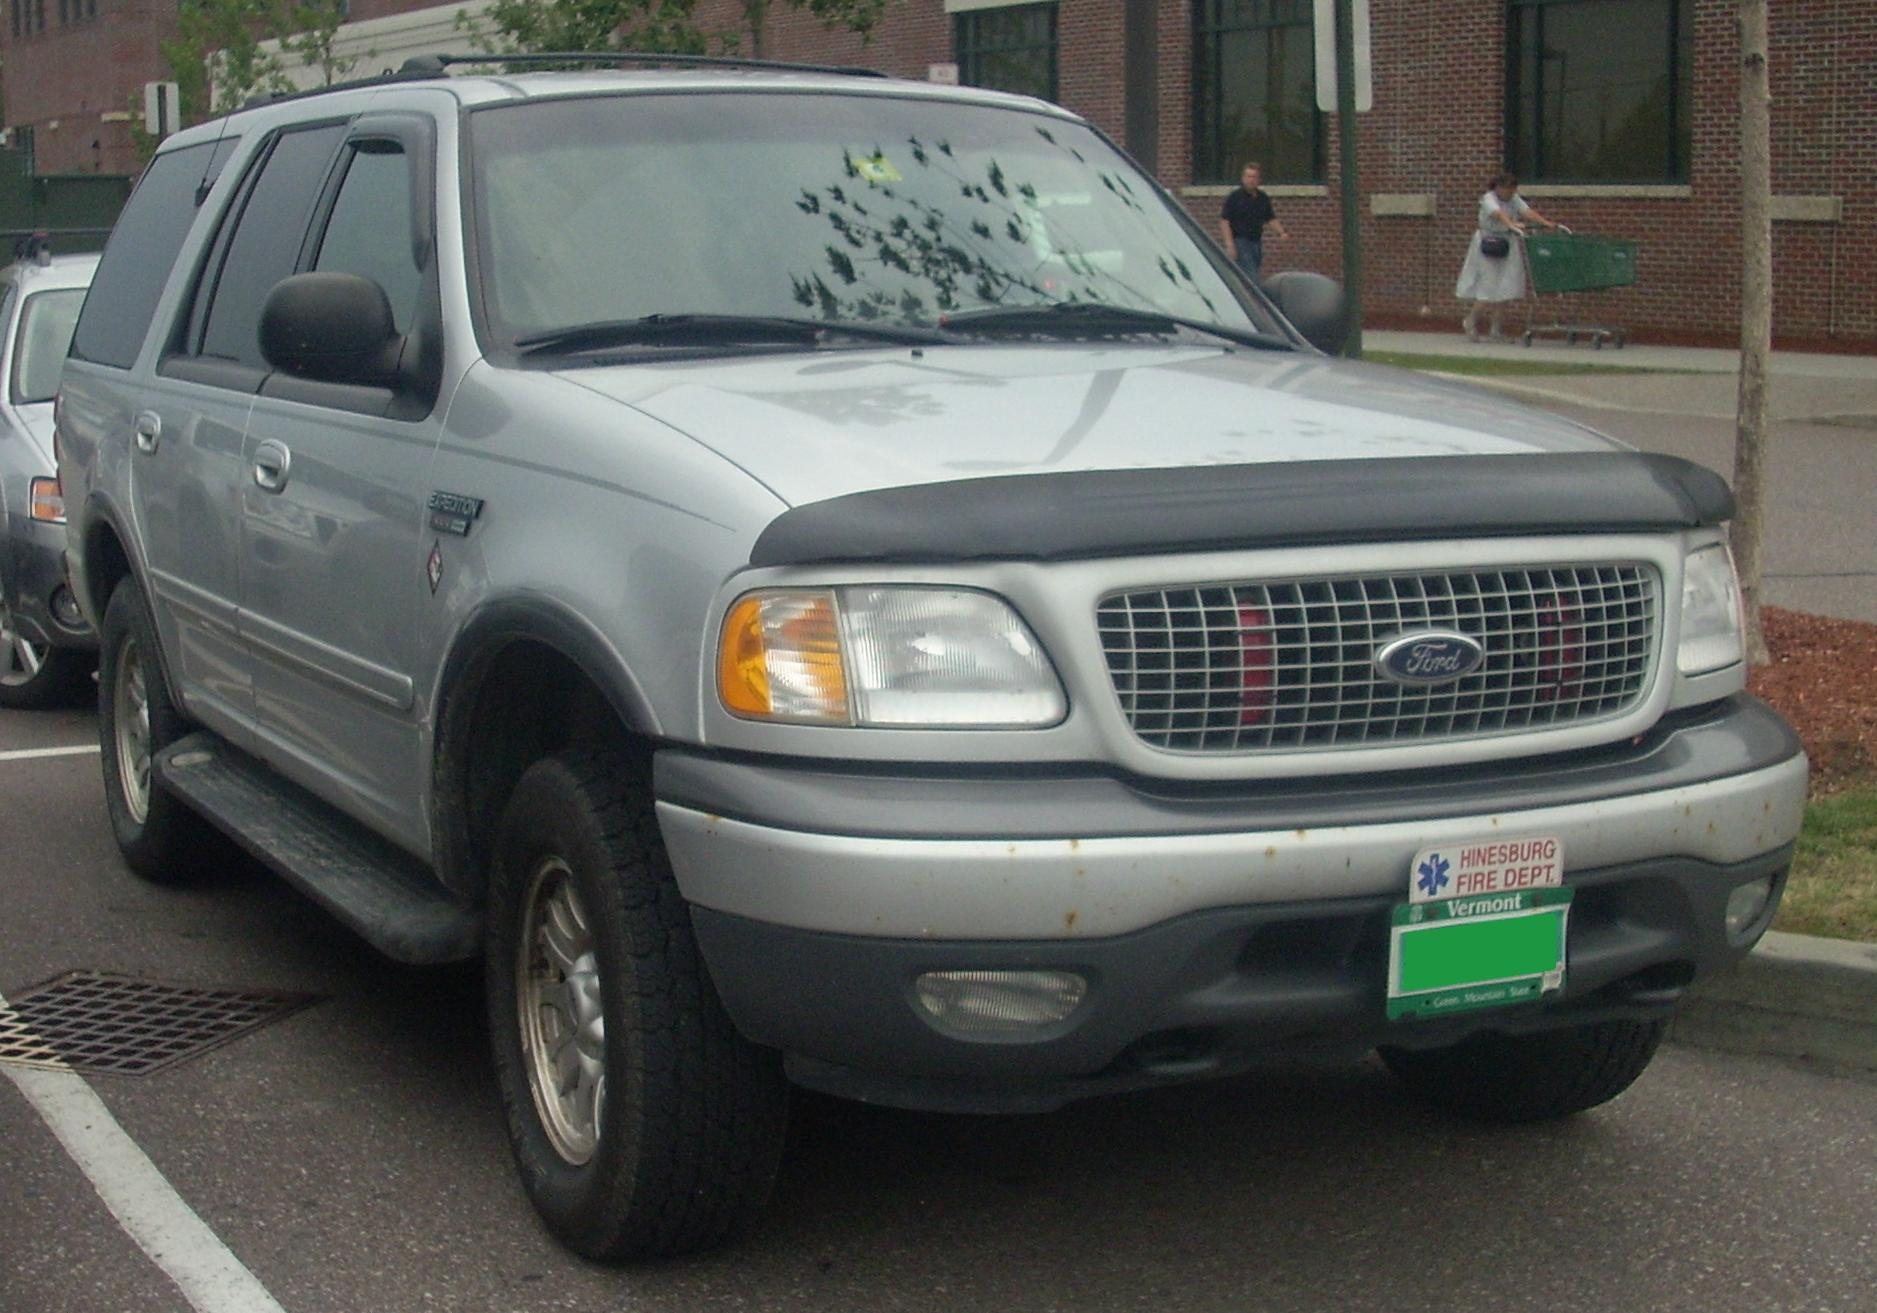 File:'99-'02 Ford Expedition (Hinesburg Fire Department ...